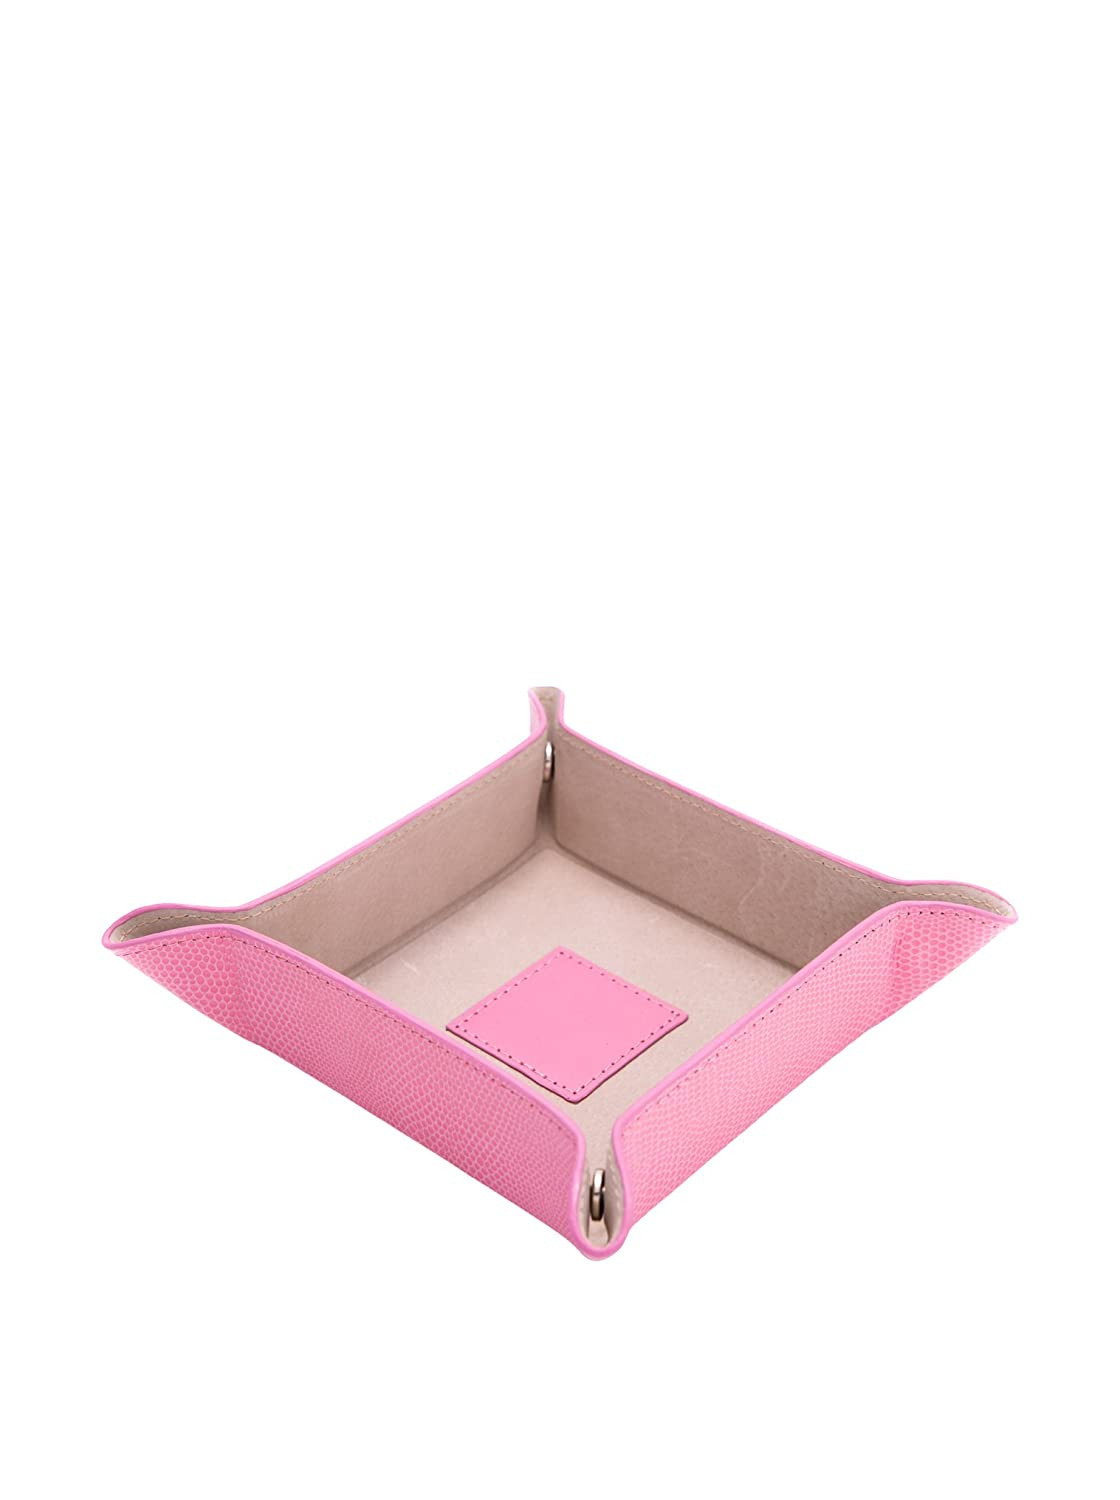 Bey-Berk Pink Lizard Print Leather Snap Valet Tray with Pig Skin Leather Lining